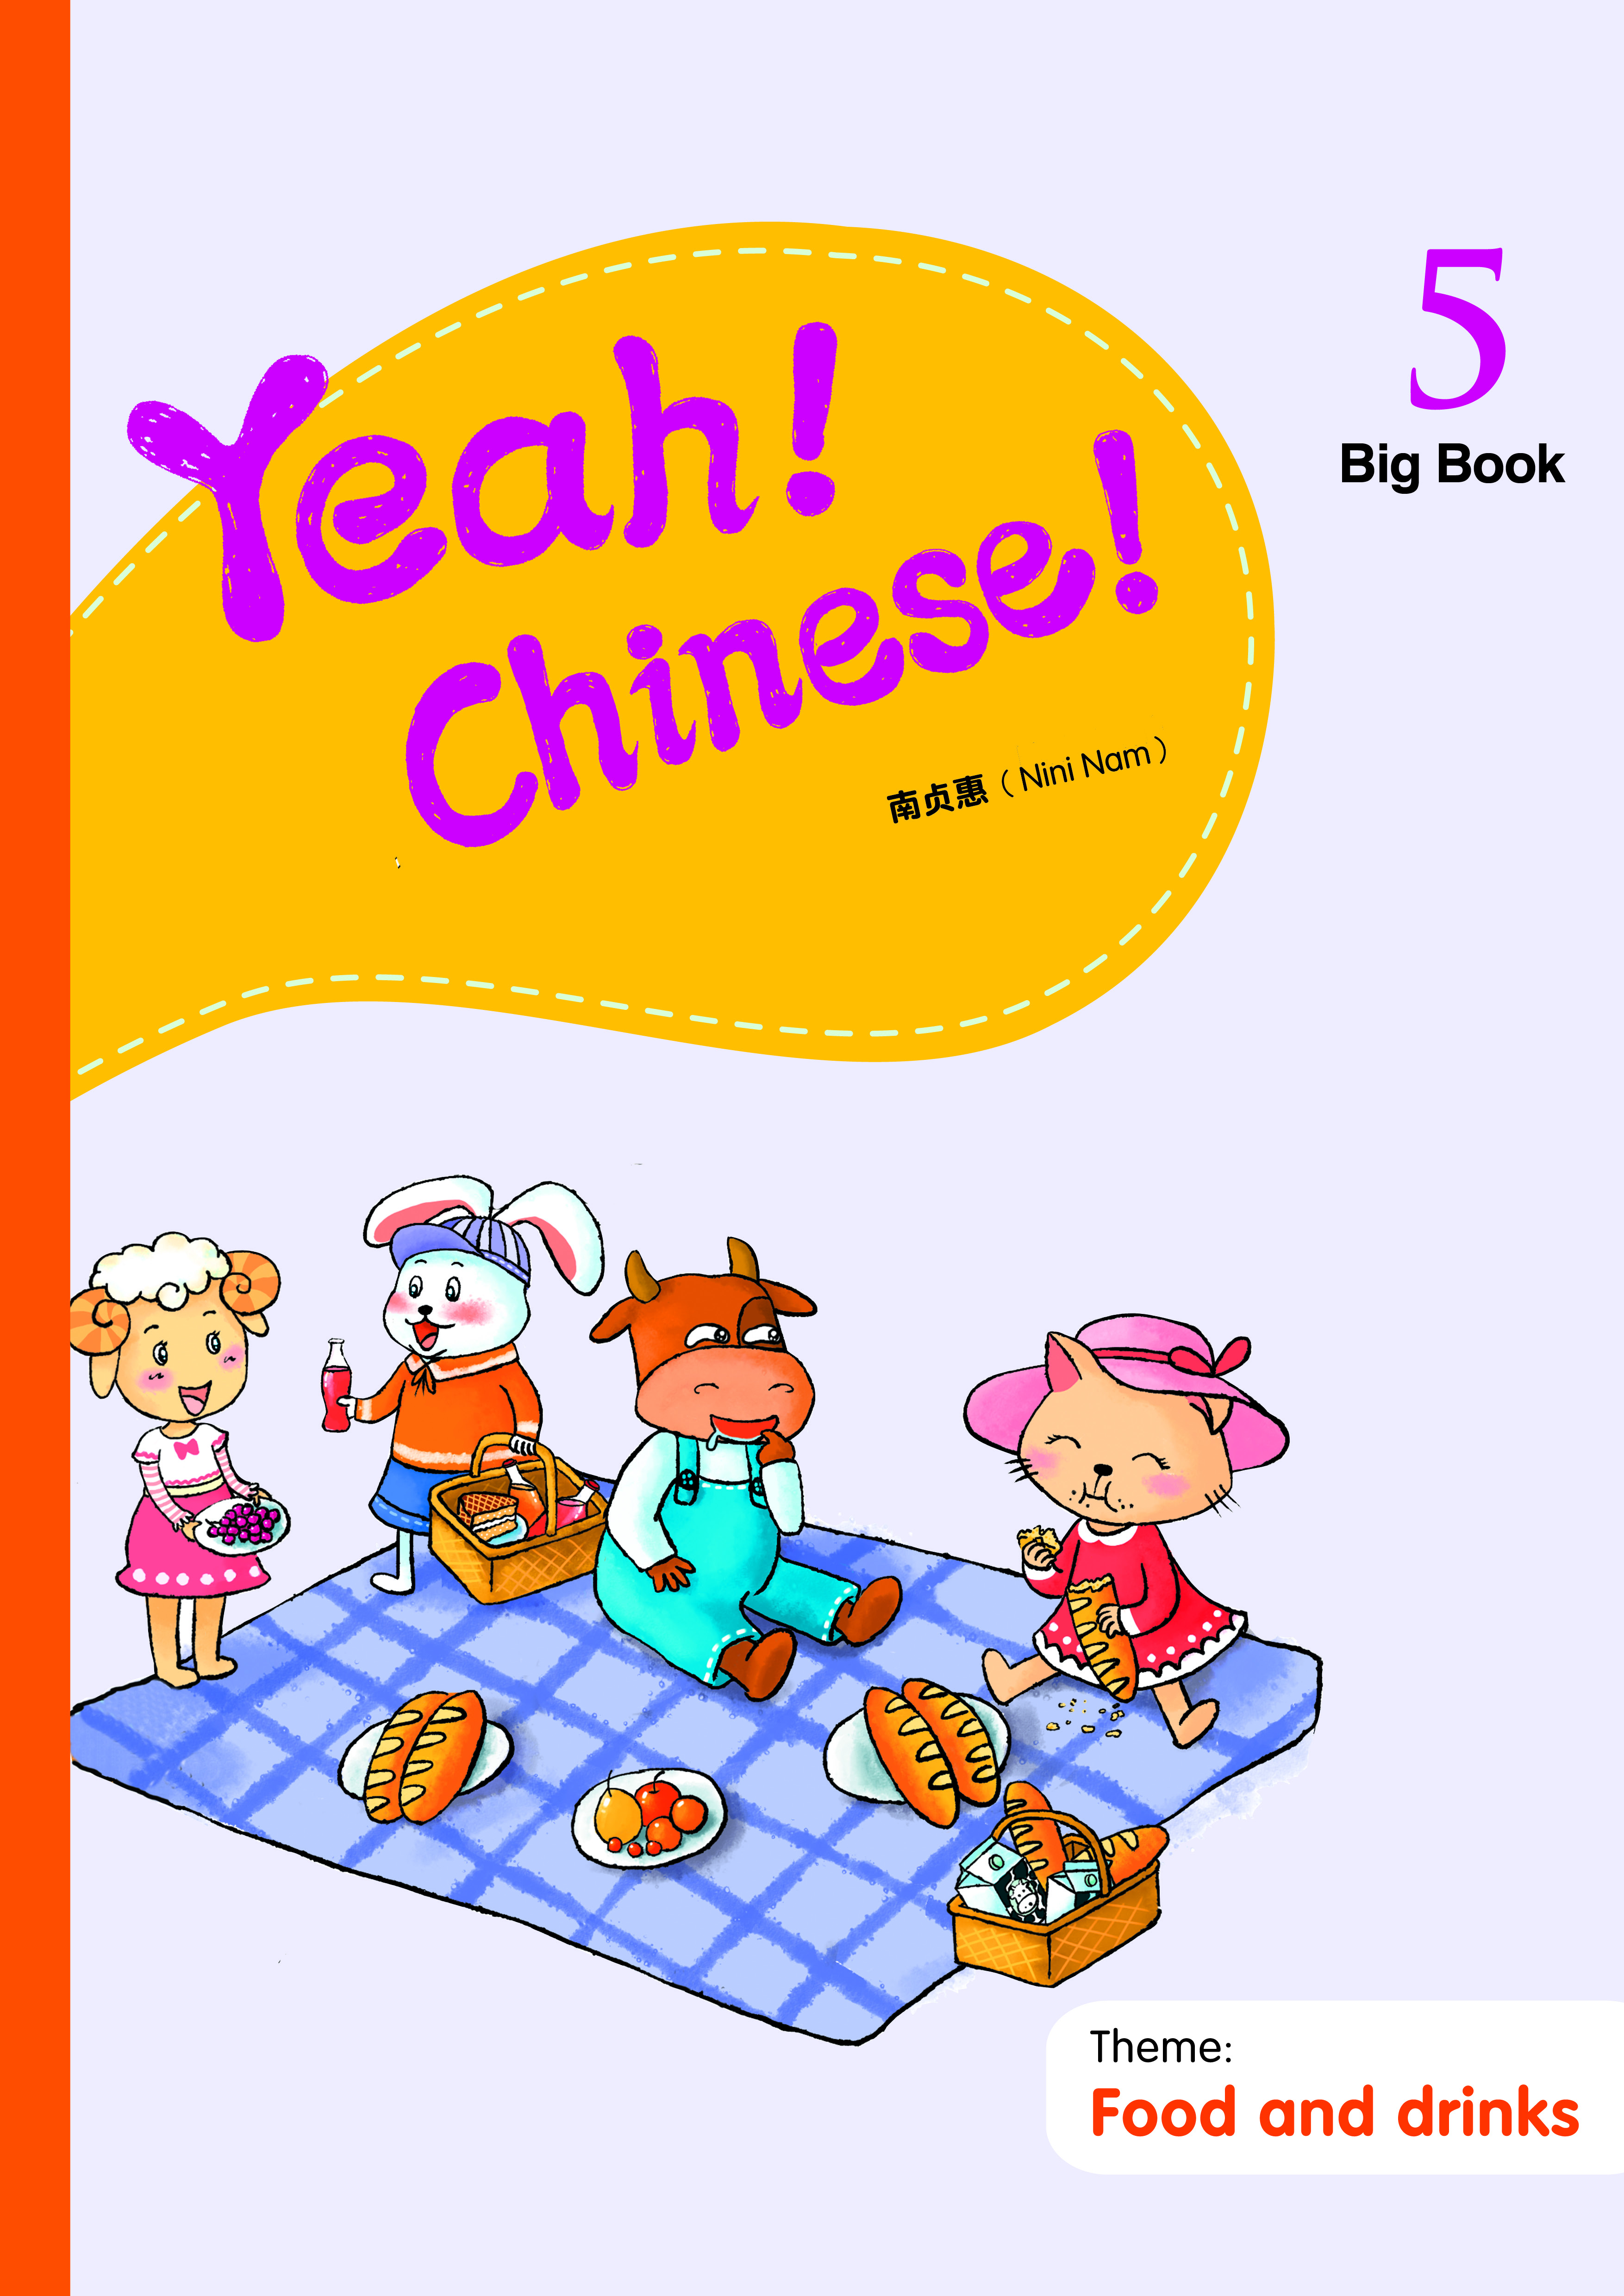 Yeah! Chinese! Big Book 5